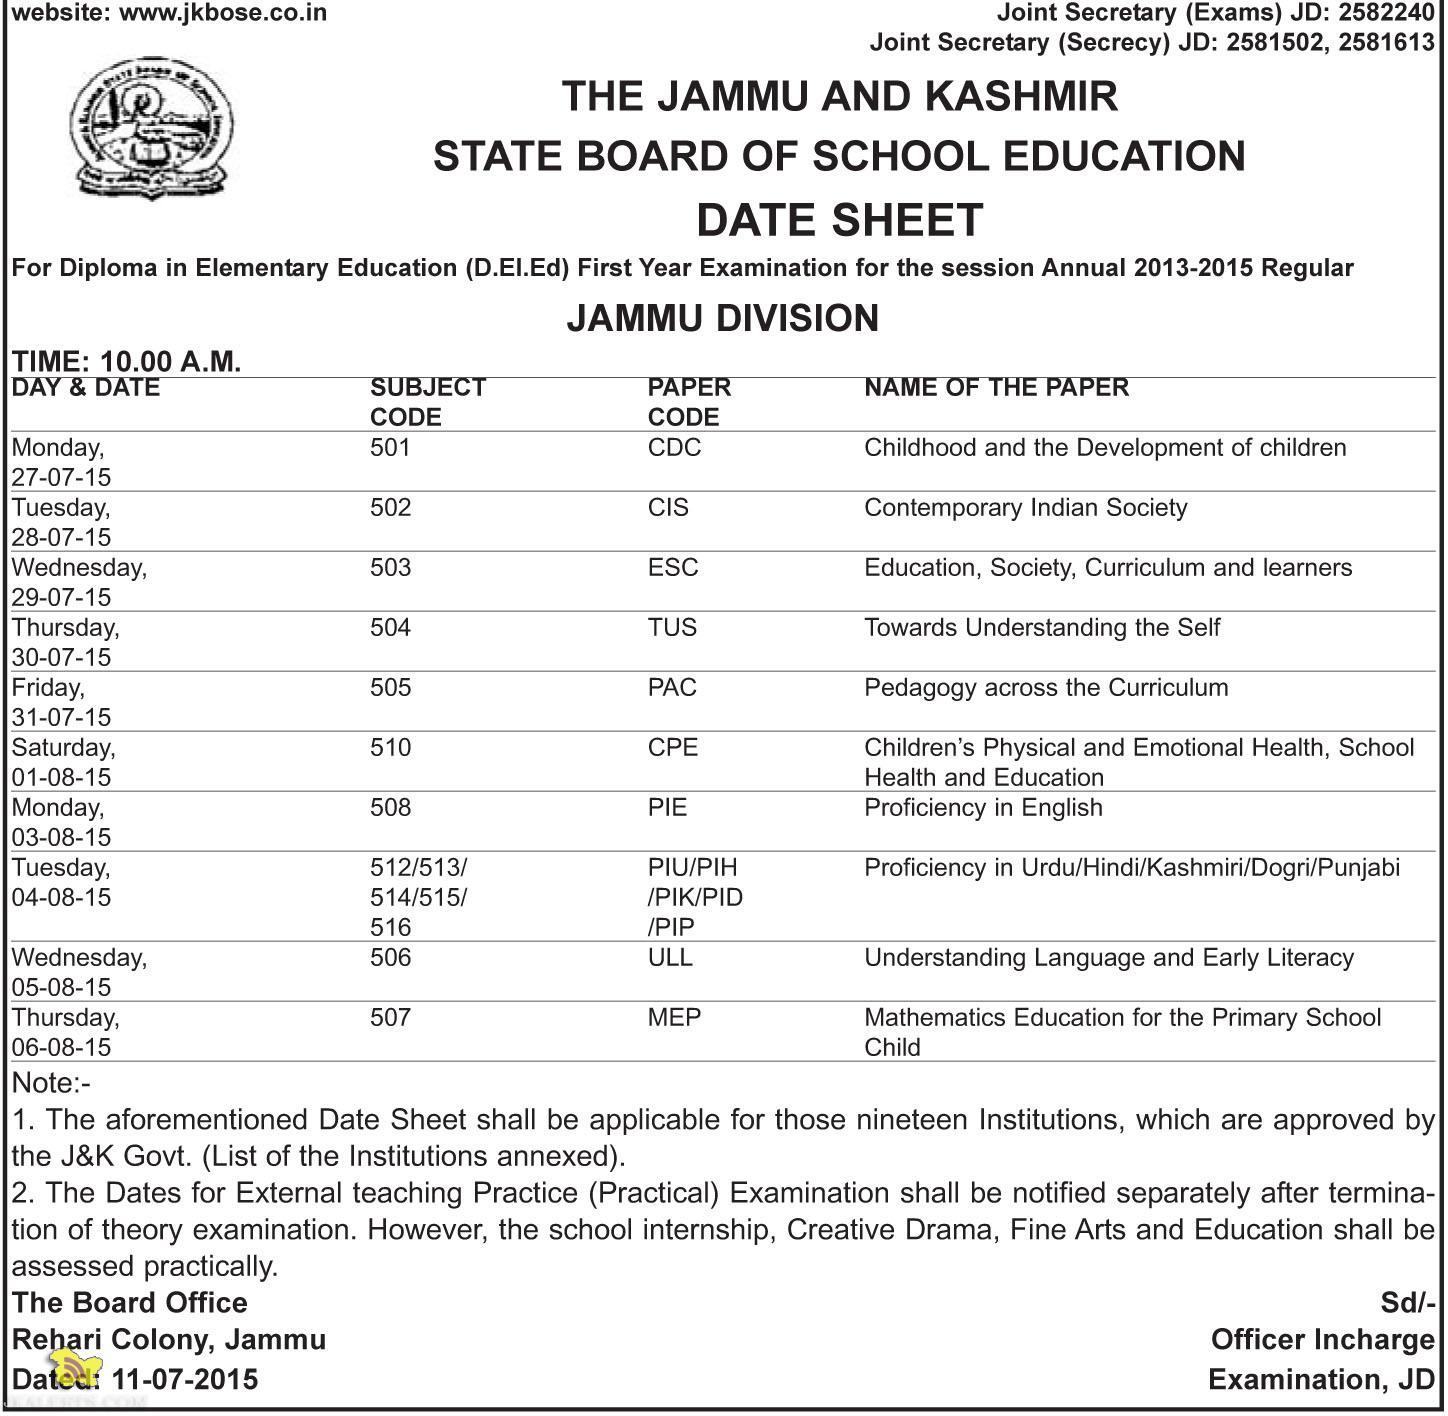 JKBOSE DATESHEET For Diploma in Elementary Education (D.EI.Ed) Jammu Division